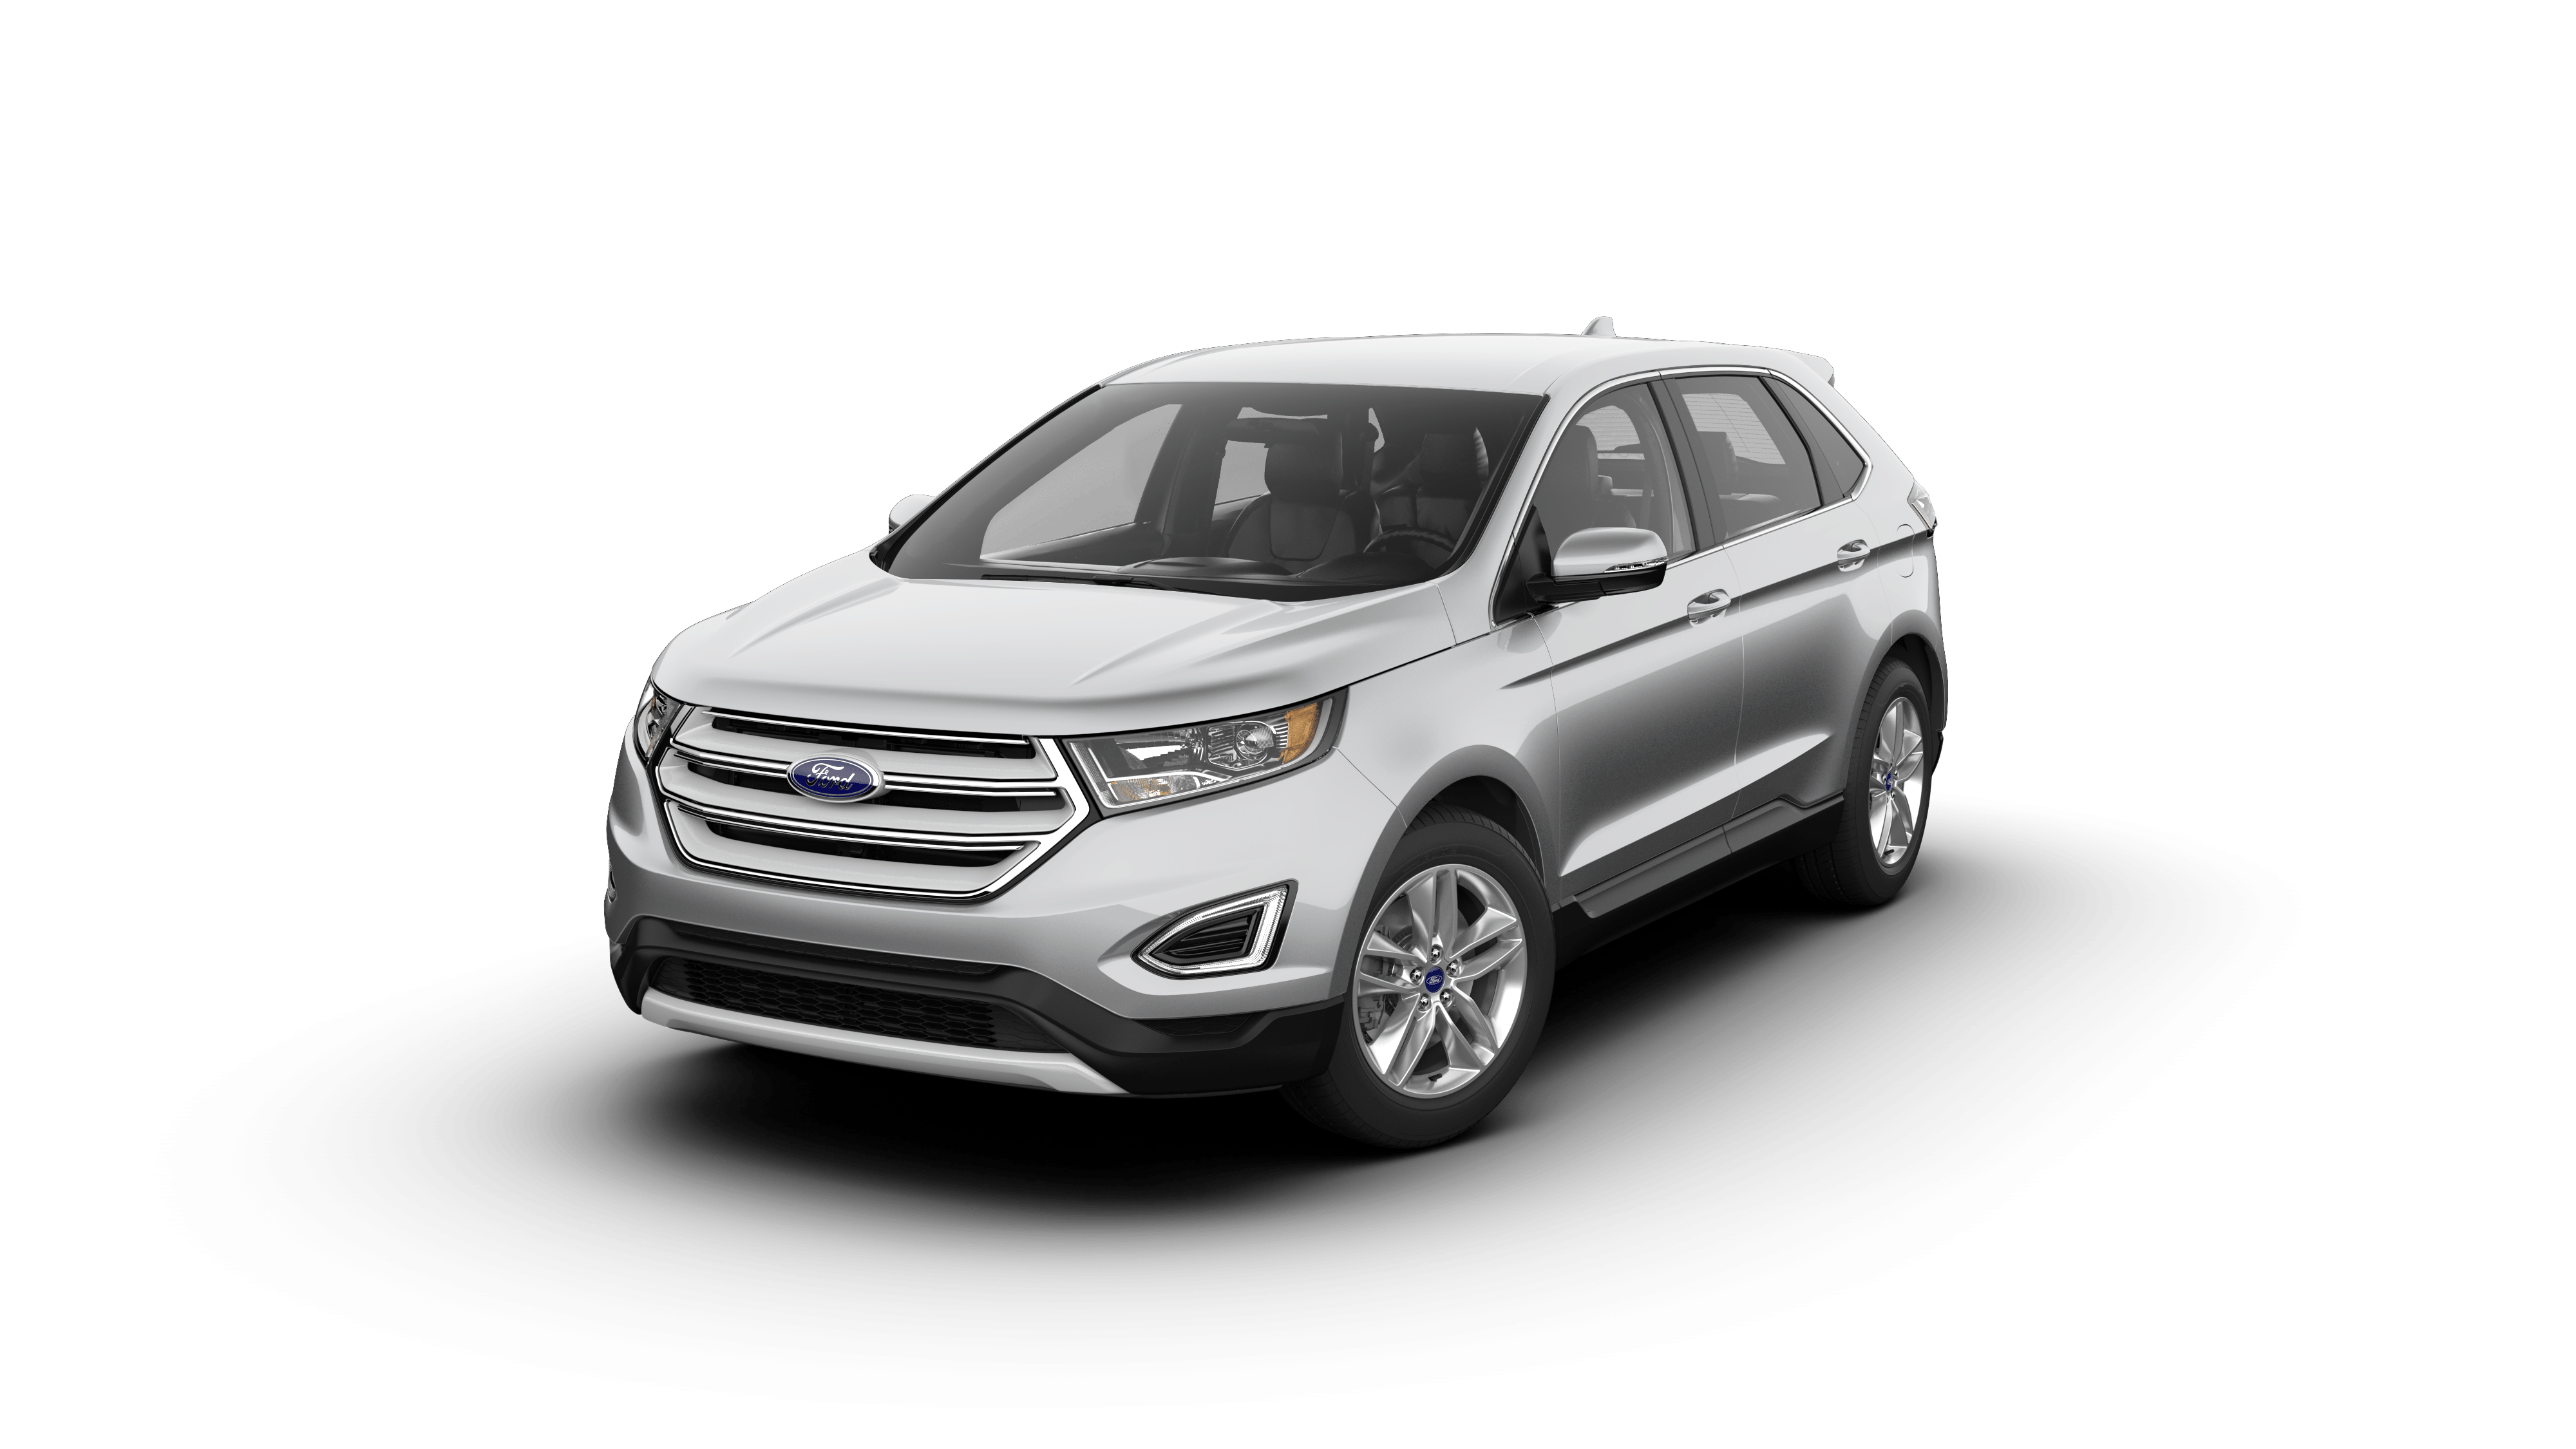 2018 ford edge for sale in natrona heights 2fmpk4j90jbc58897 cochran ford